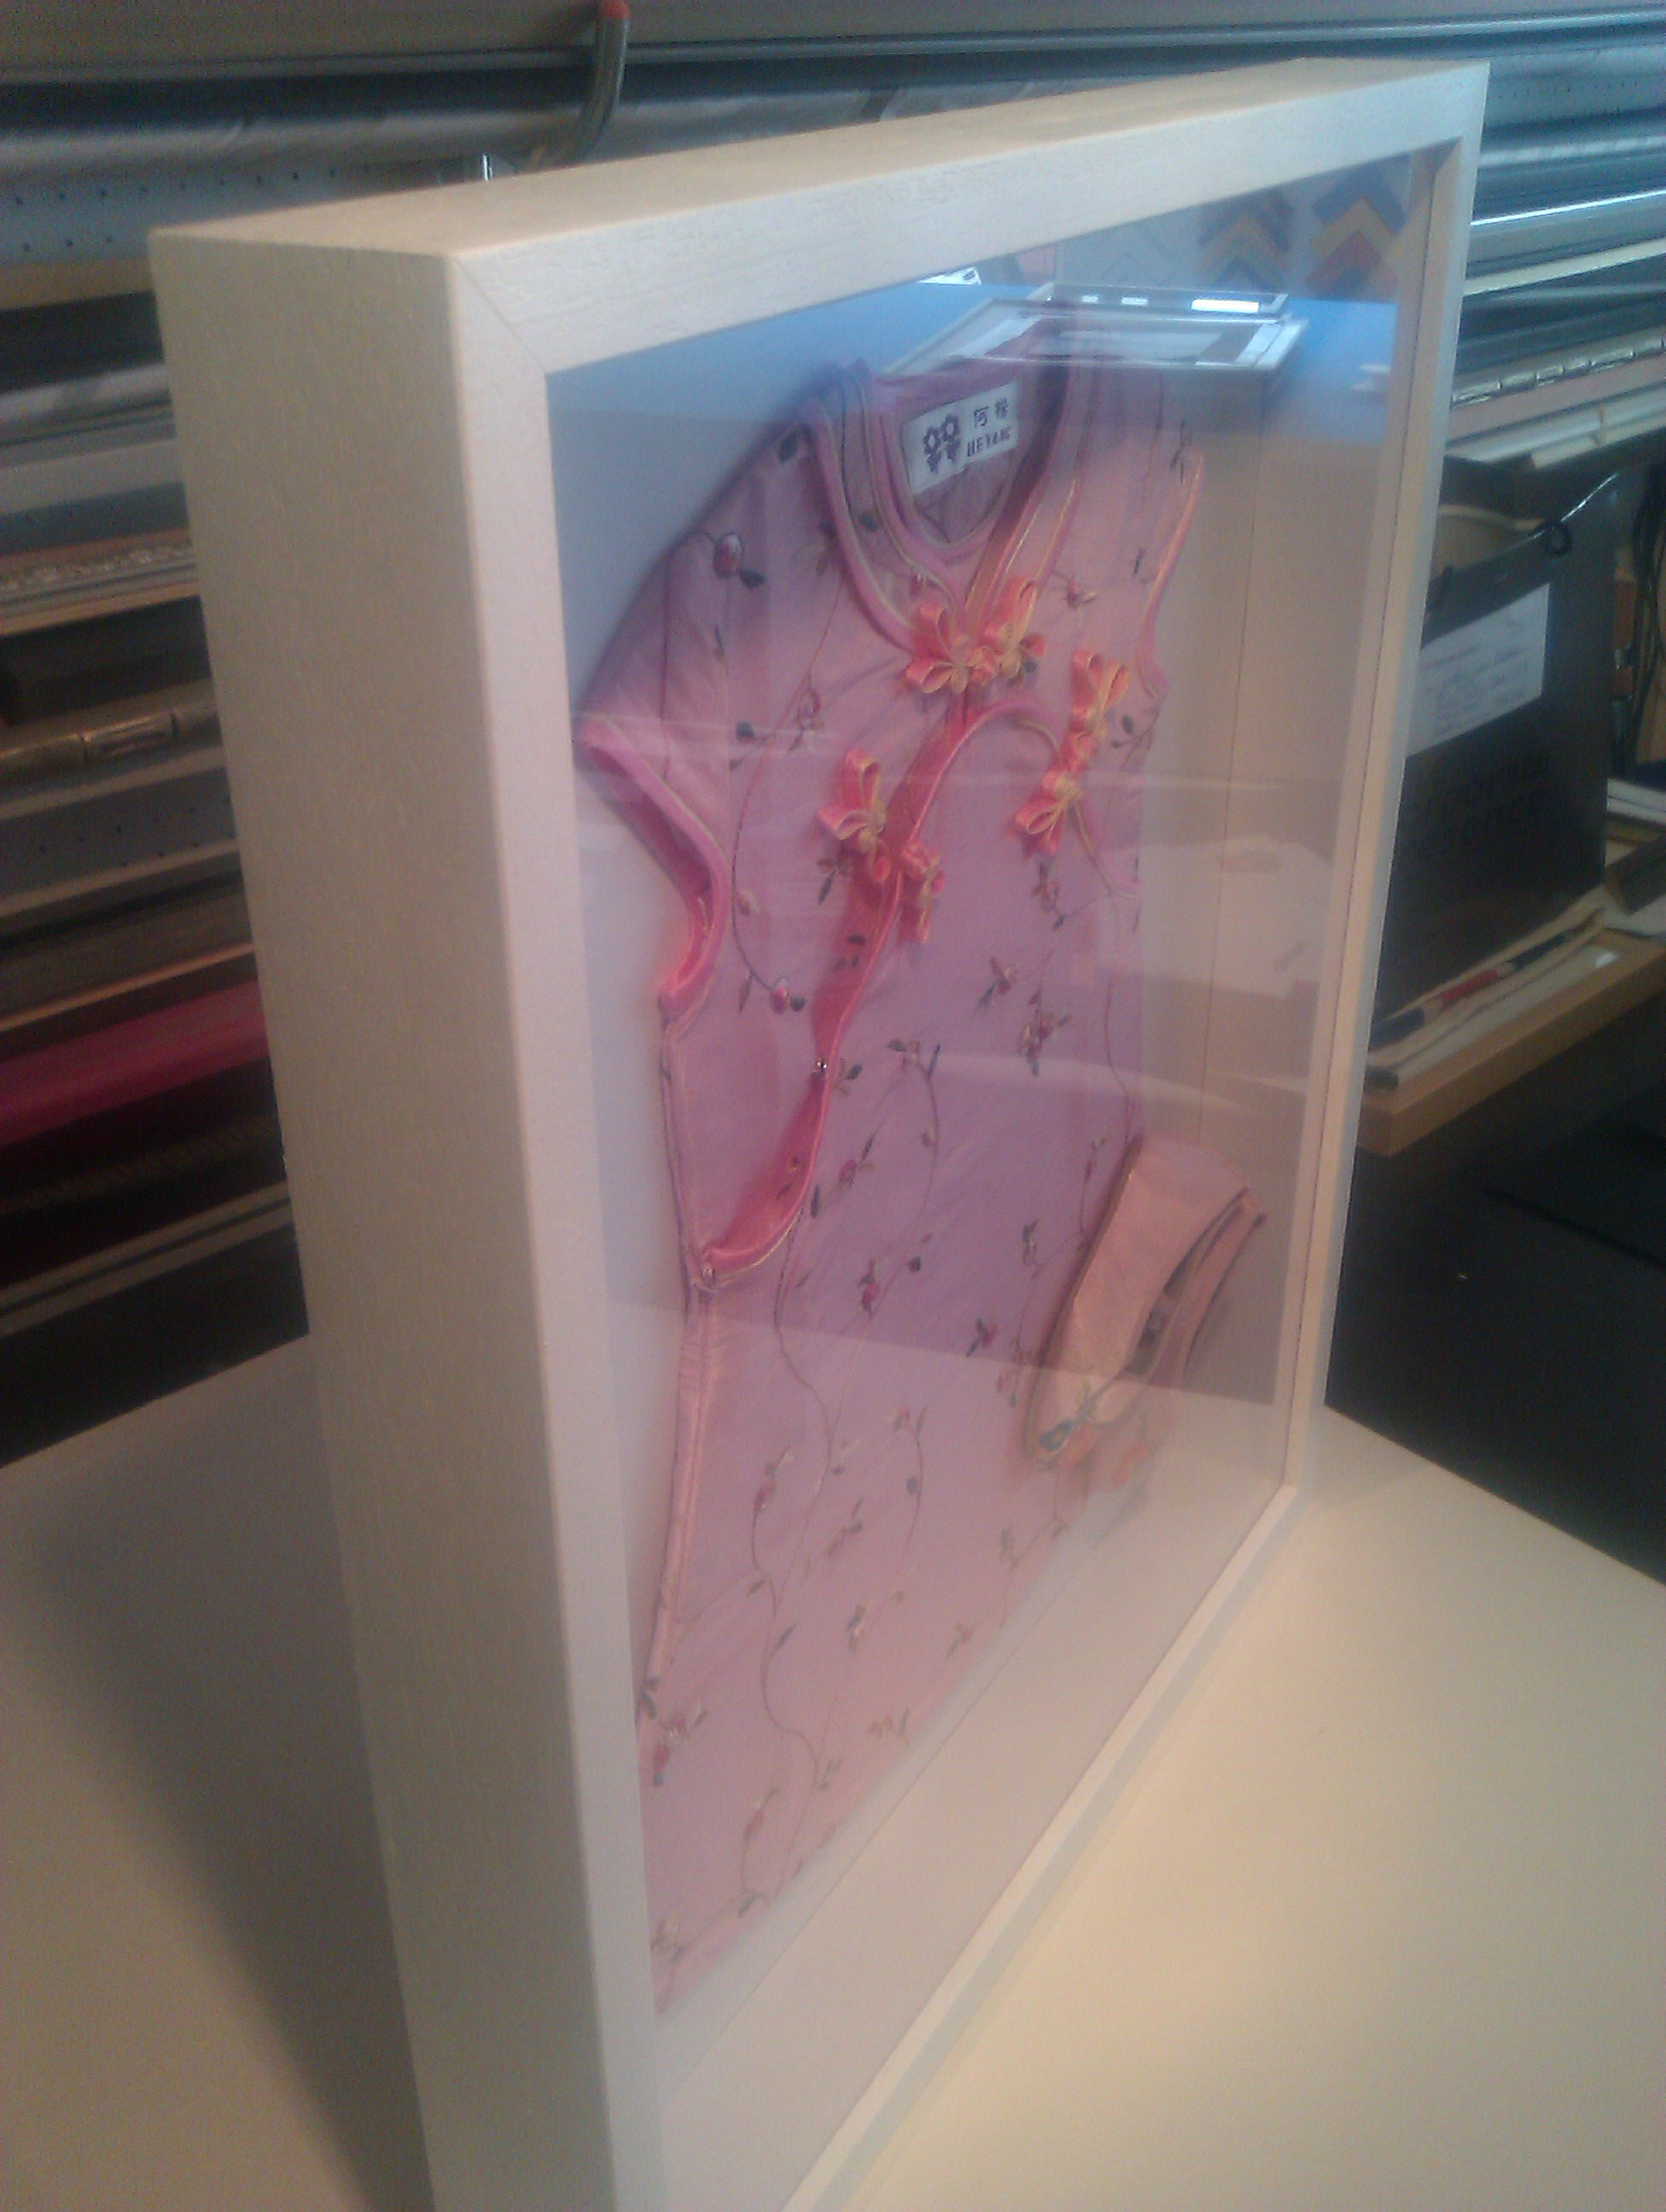 Dress stretched and slippers displayed in box frame